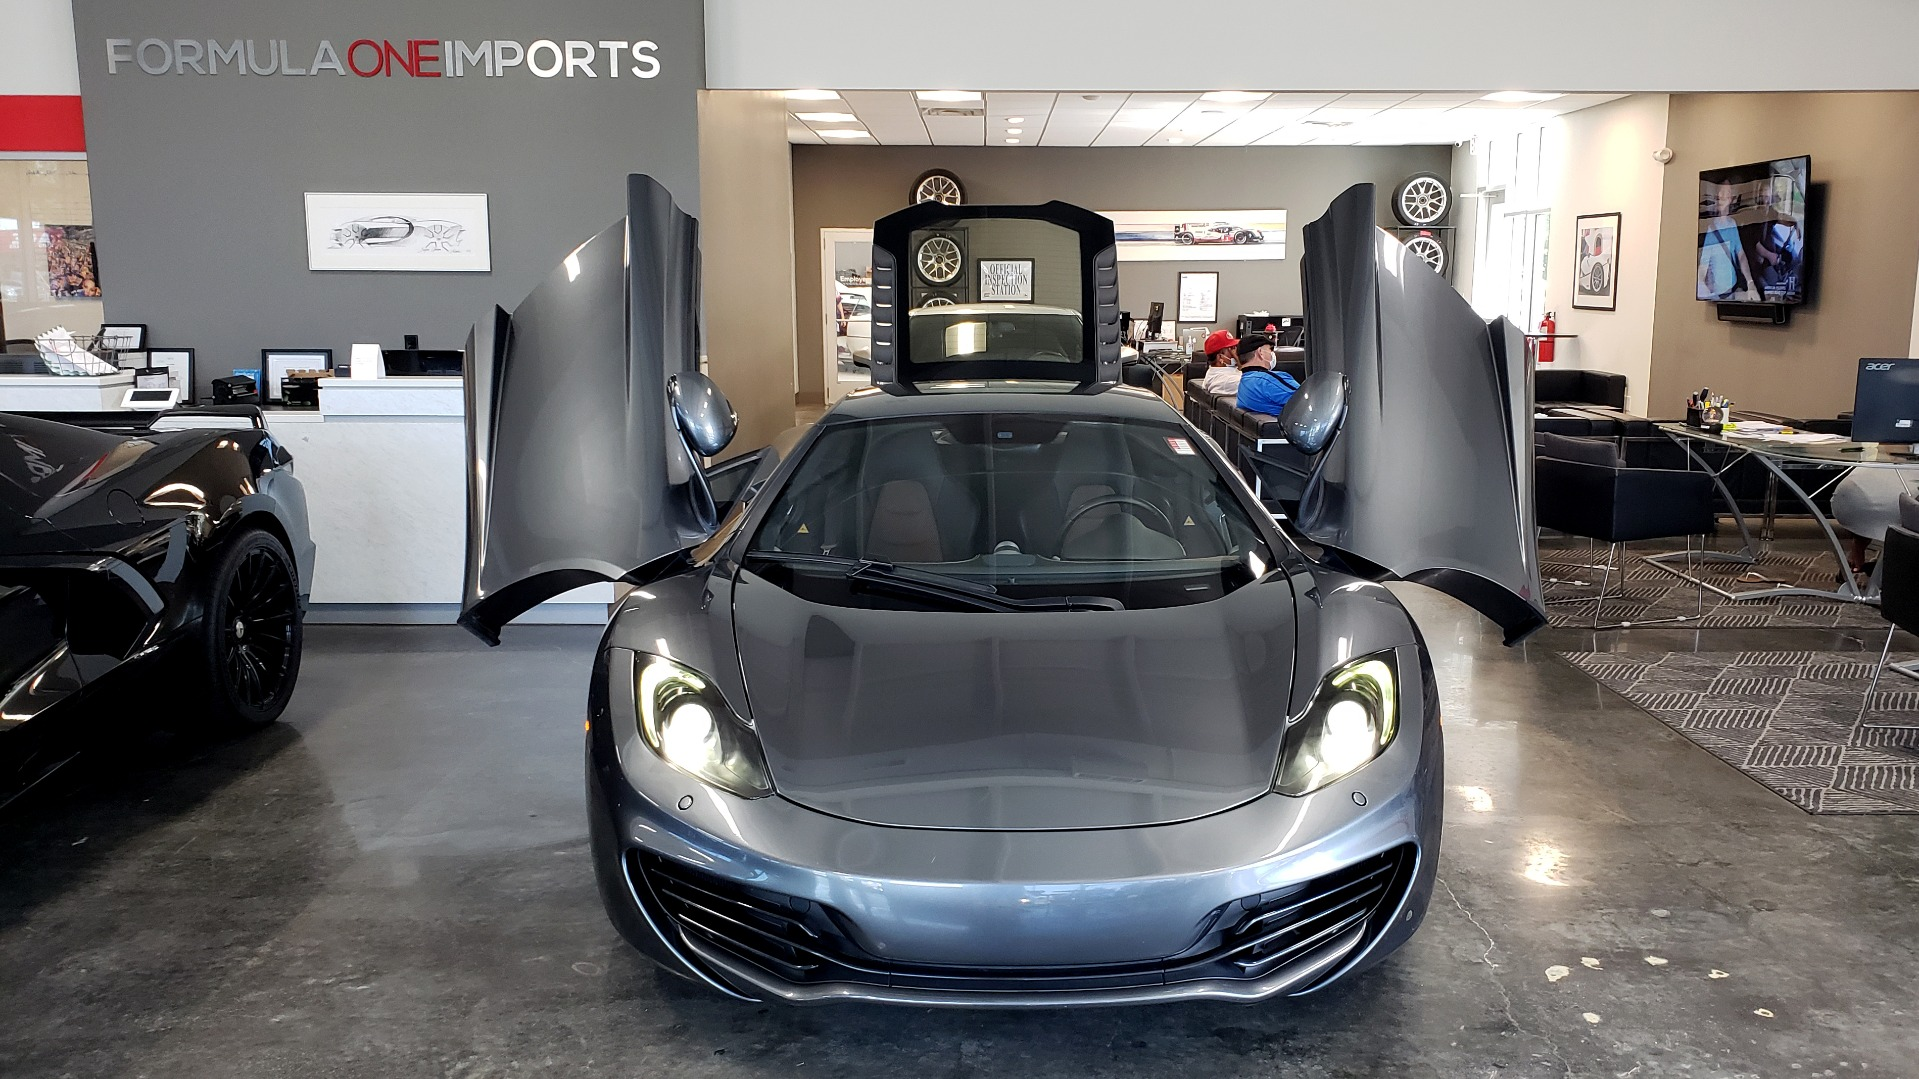 Used 2012 McLaren MP4-12C COUPE / 3.8 L V8 592HP / AUTO / NAV / CCB / LOW MILES for sale Sold at Formula Imports in Charlotte NC 28227 85